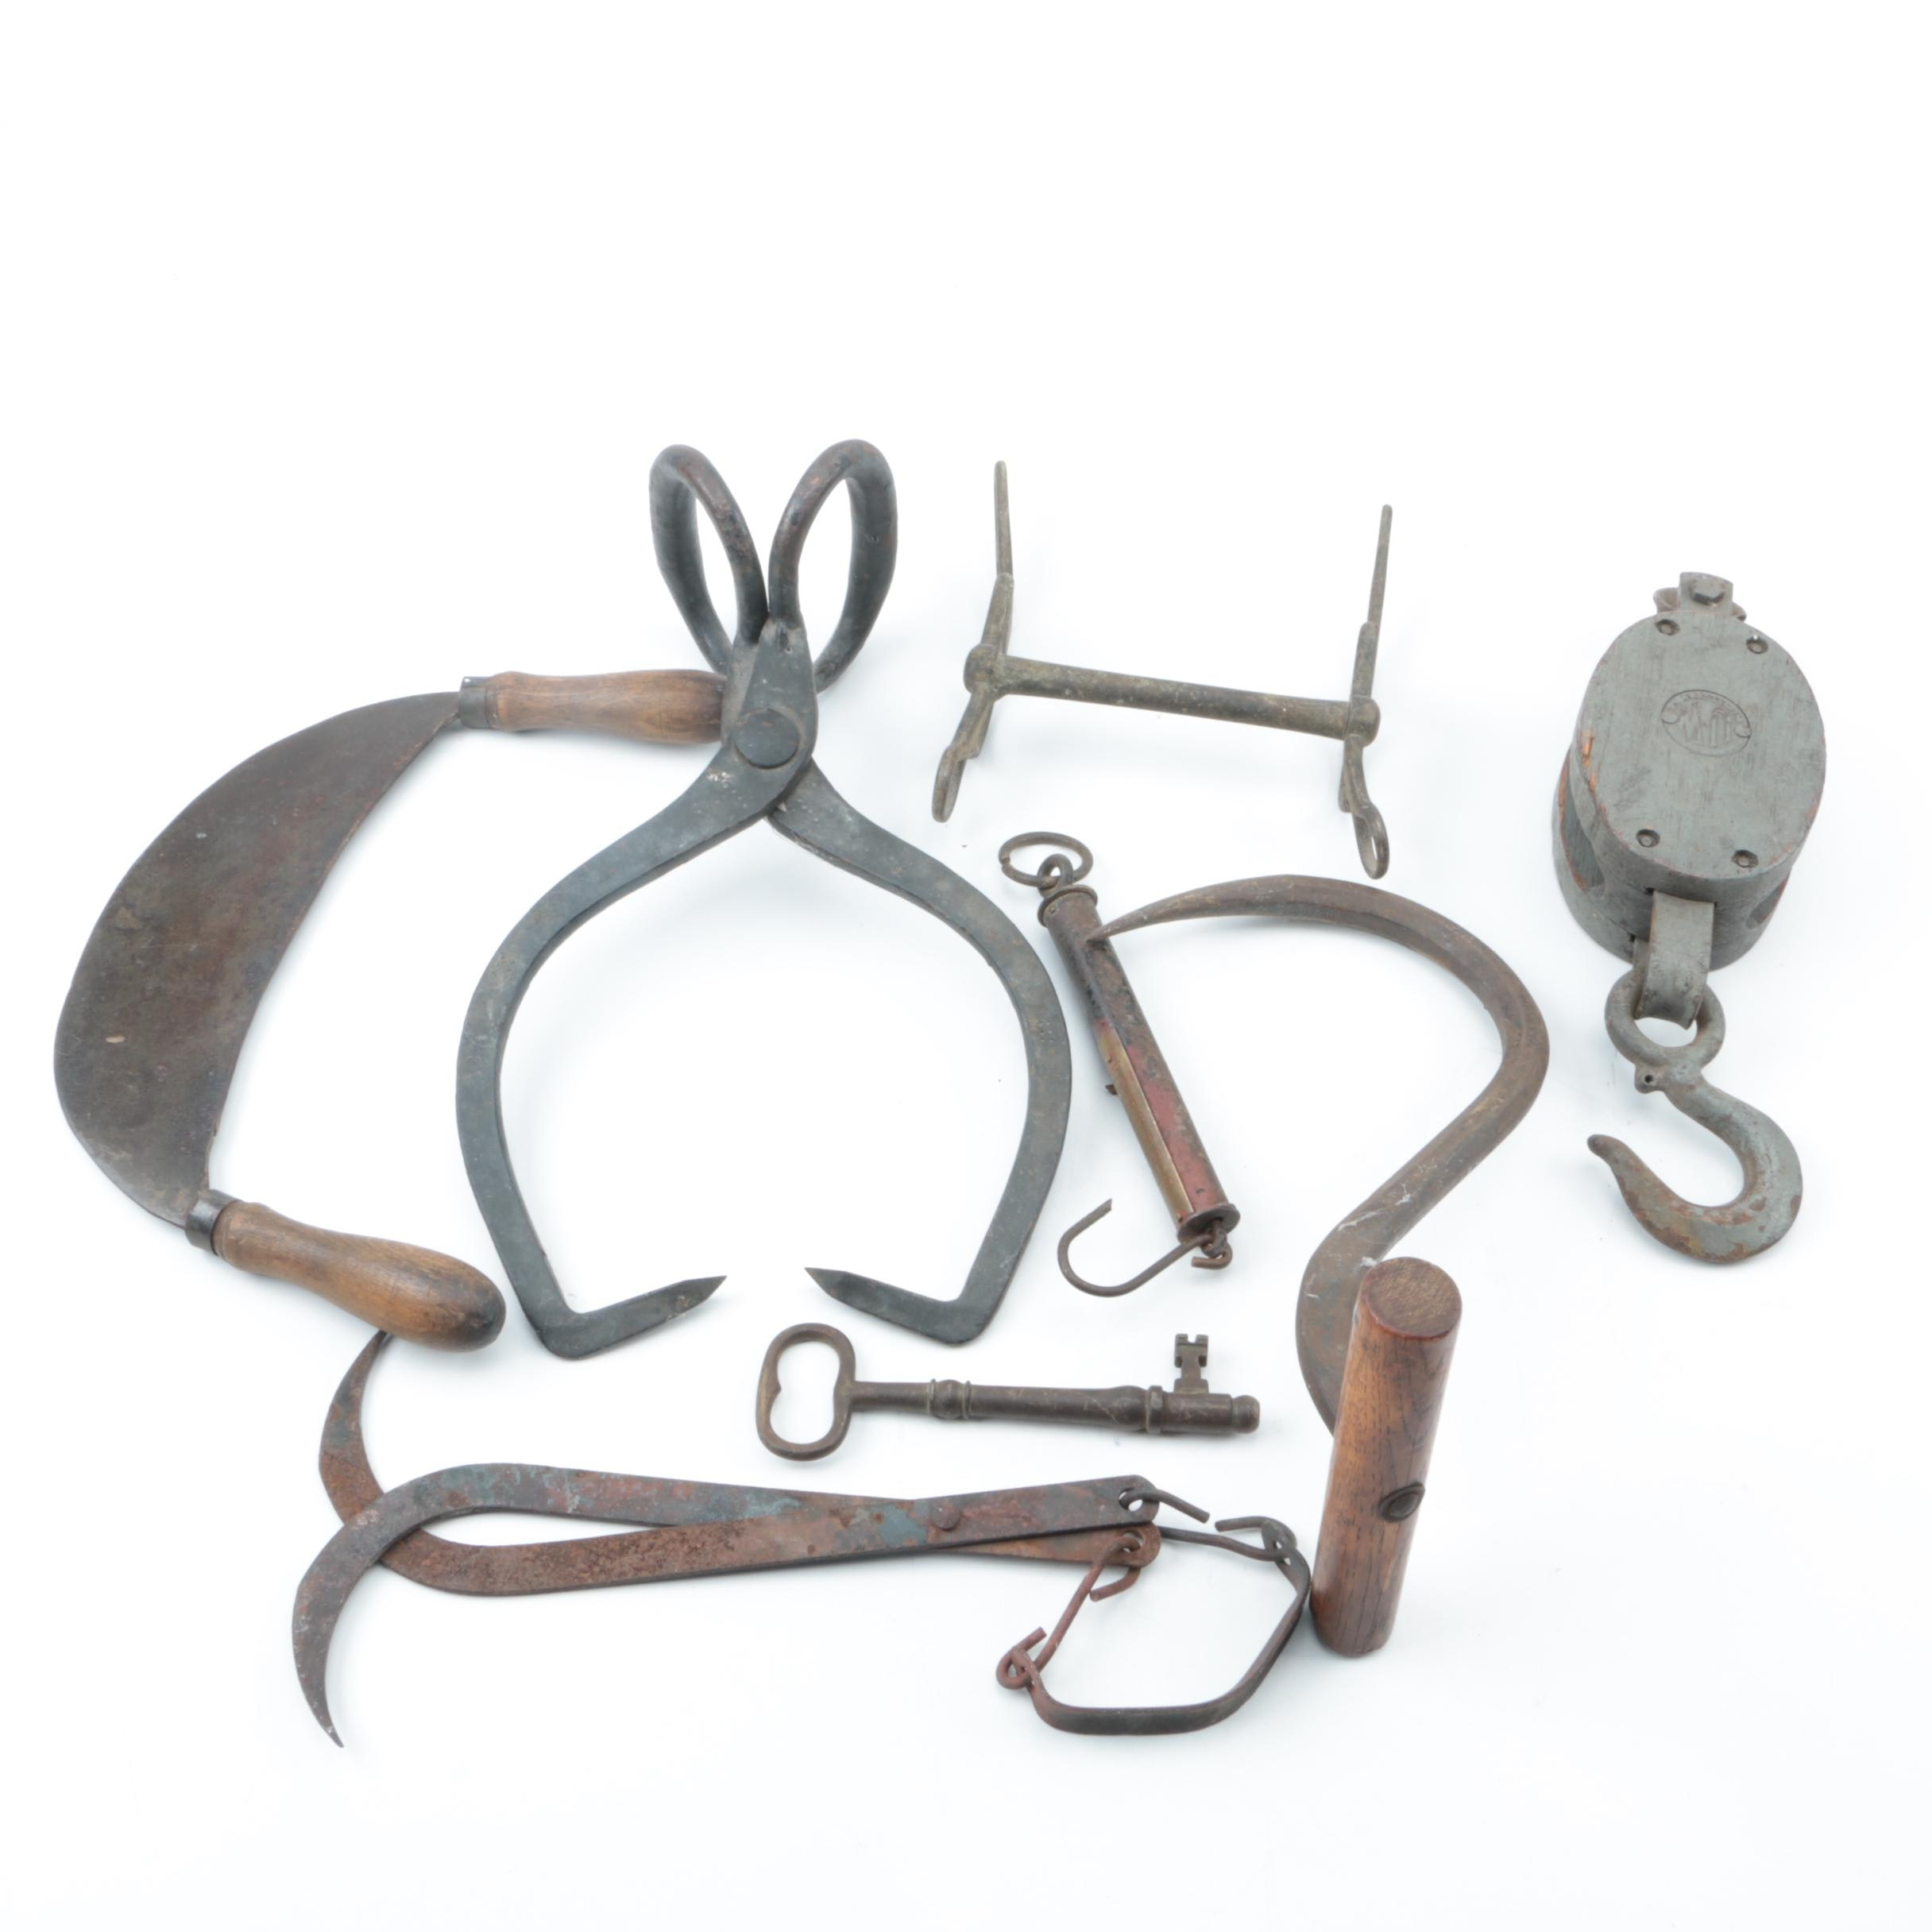 Vintage Metal Field Tools